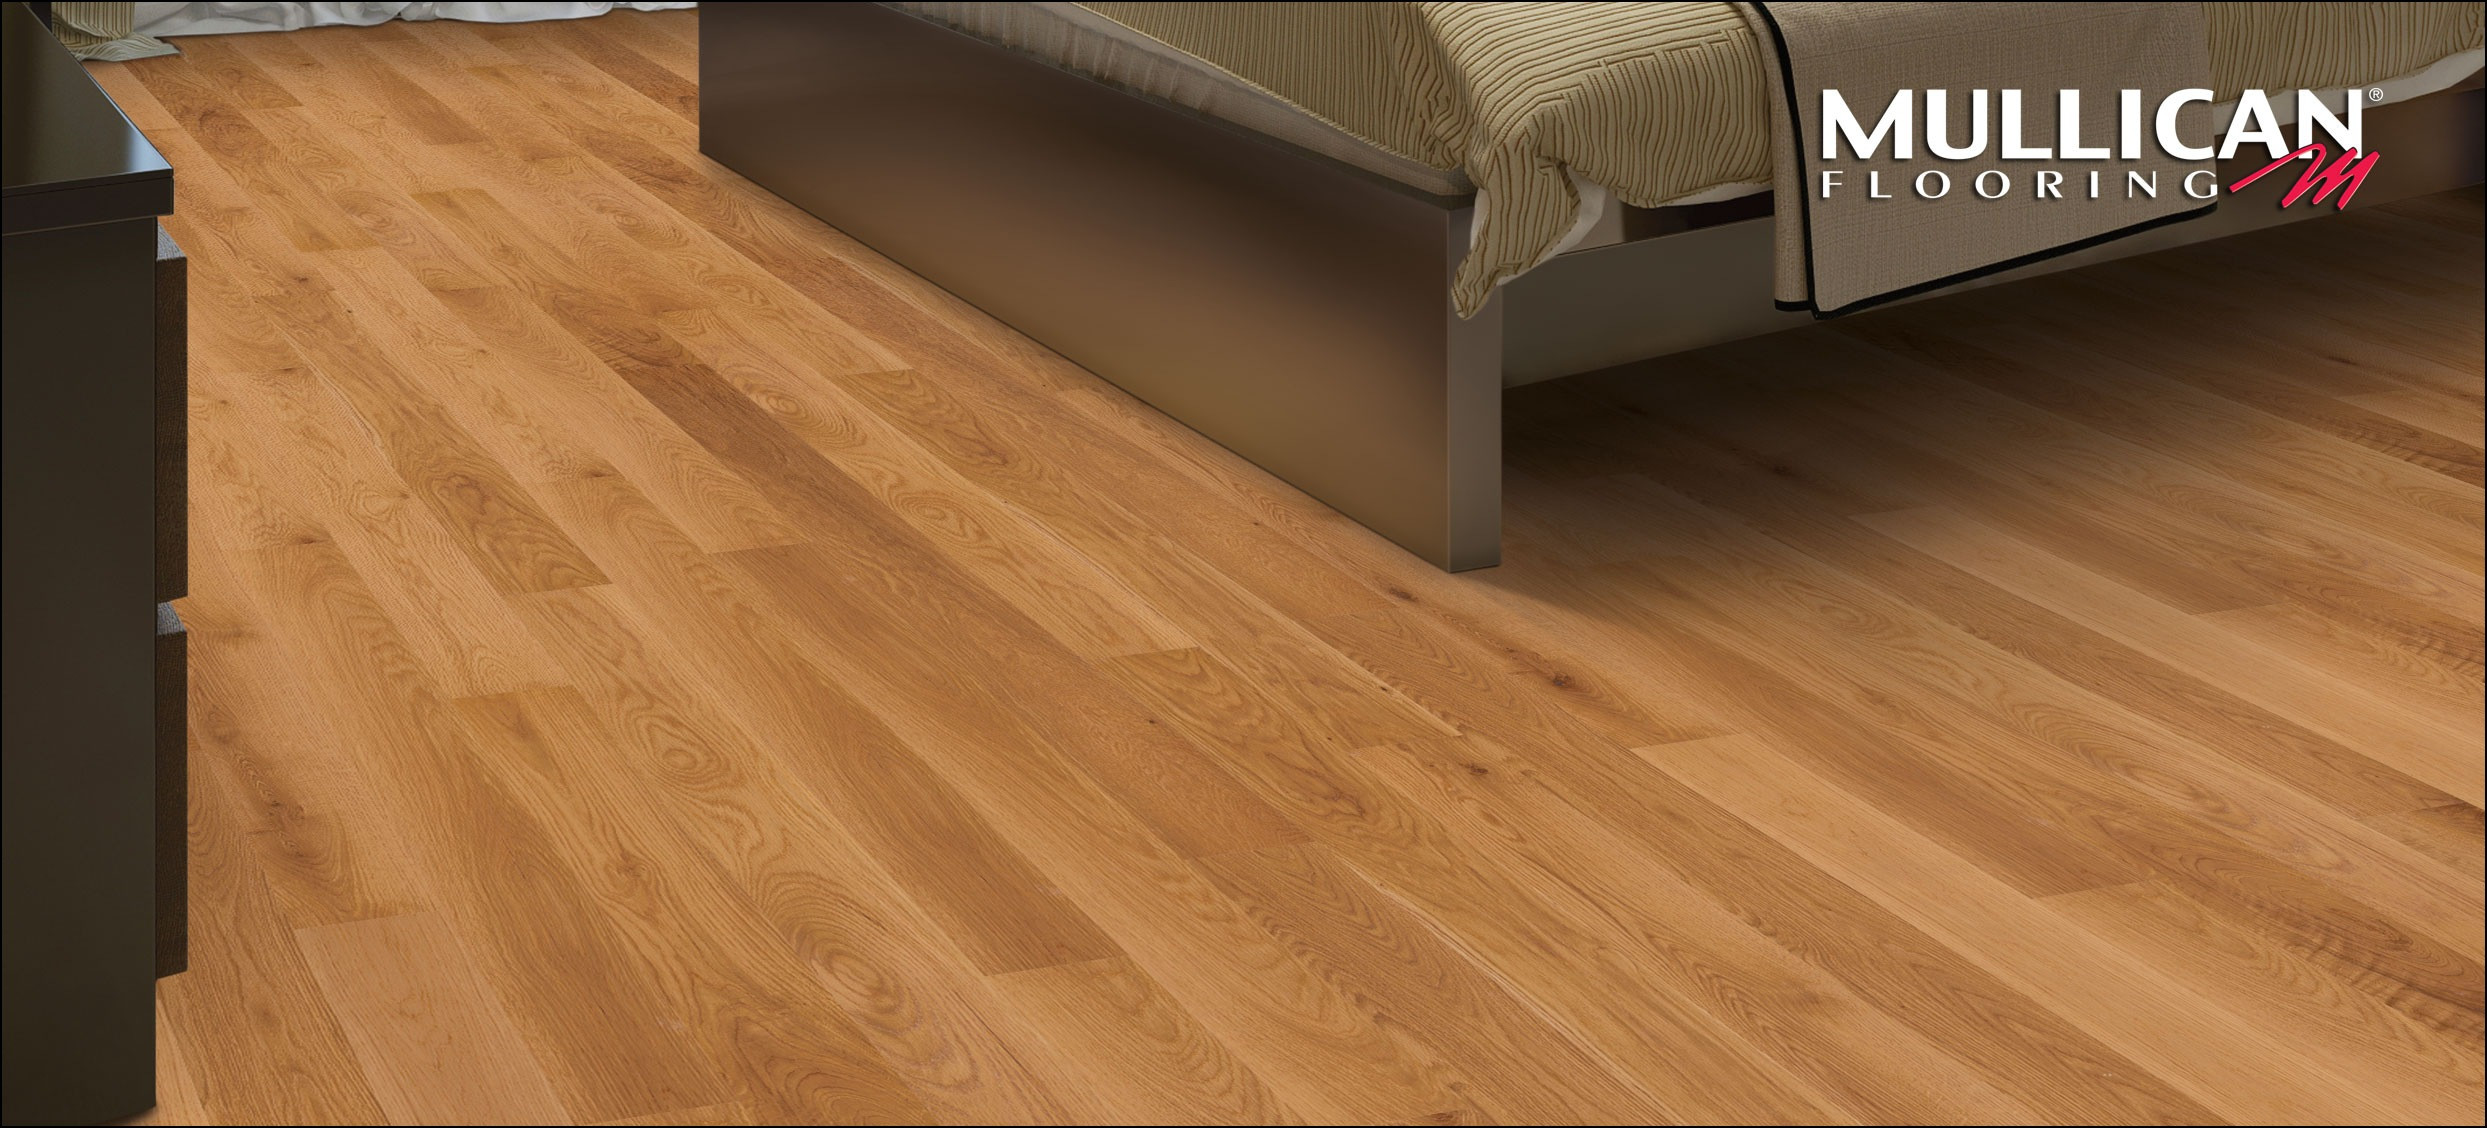 mullican vs bruce hardwood flooring of hardwood flooring suppliers france flooring ideas pertaining to hardwood flooring installation san diego collection mullican flooring home of hardwood flooring installation san diego